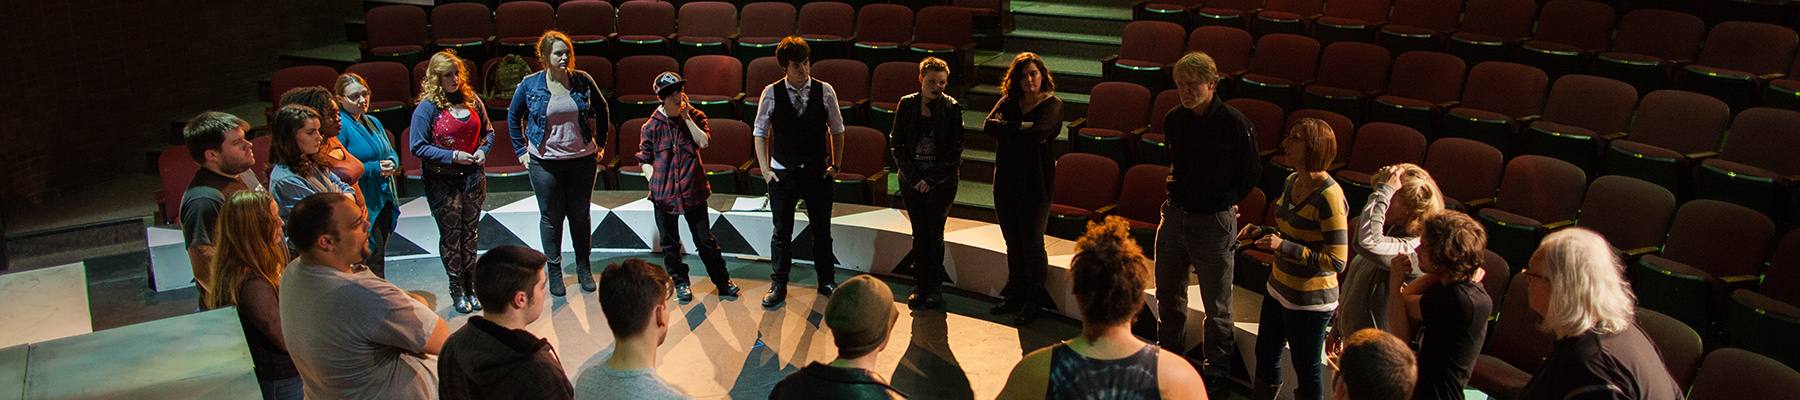 Students standing in circle on theater stage